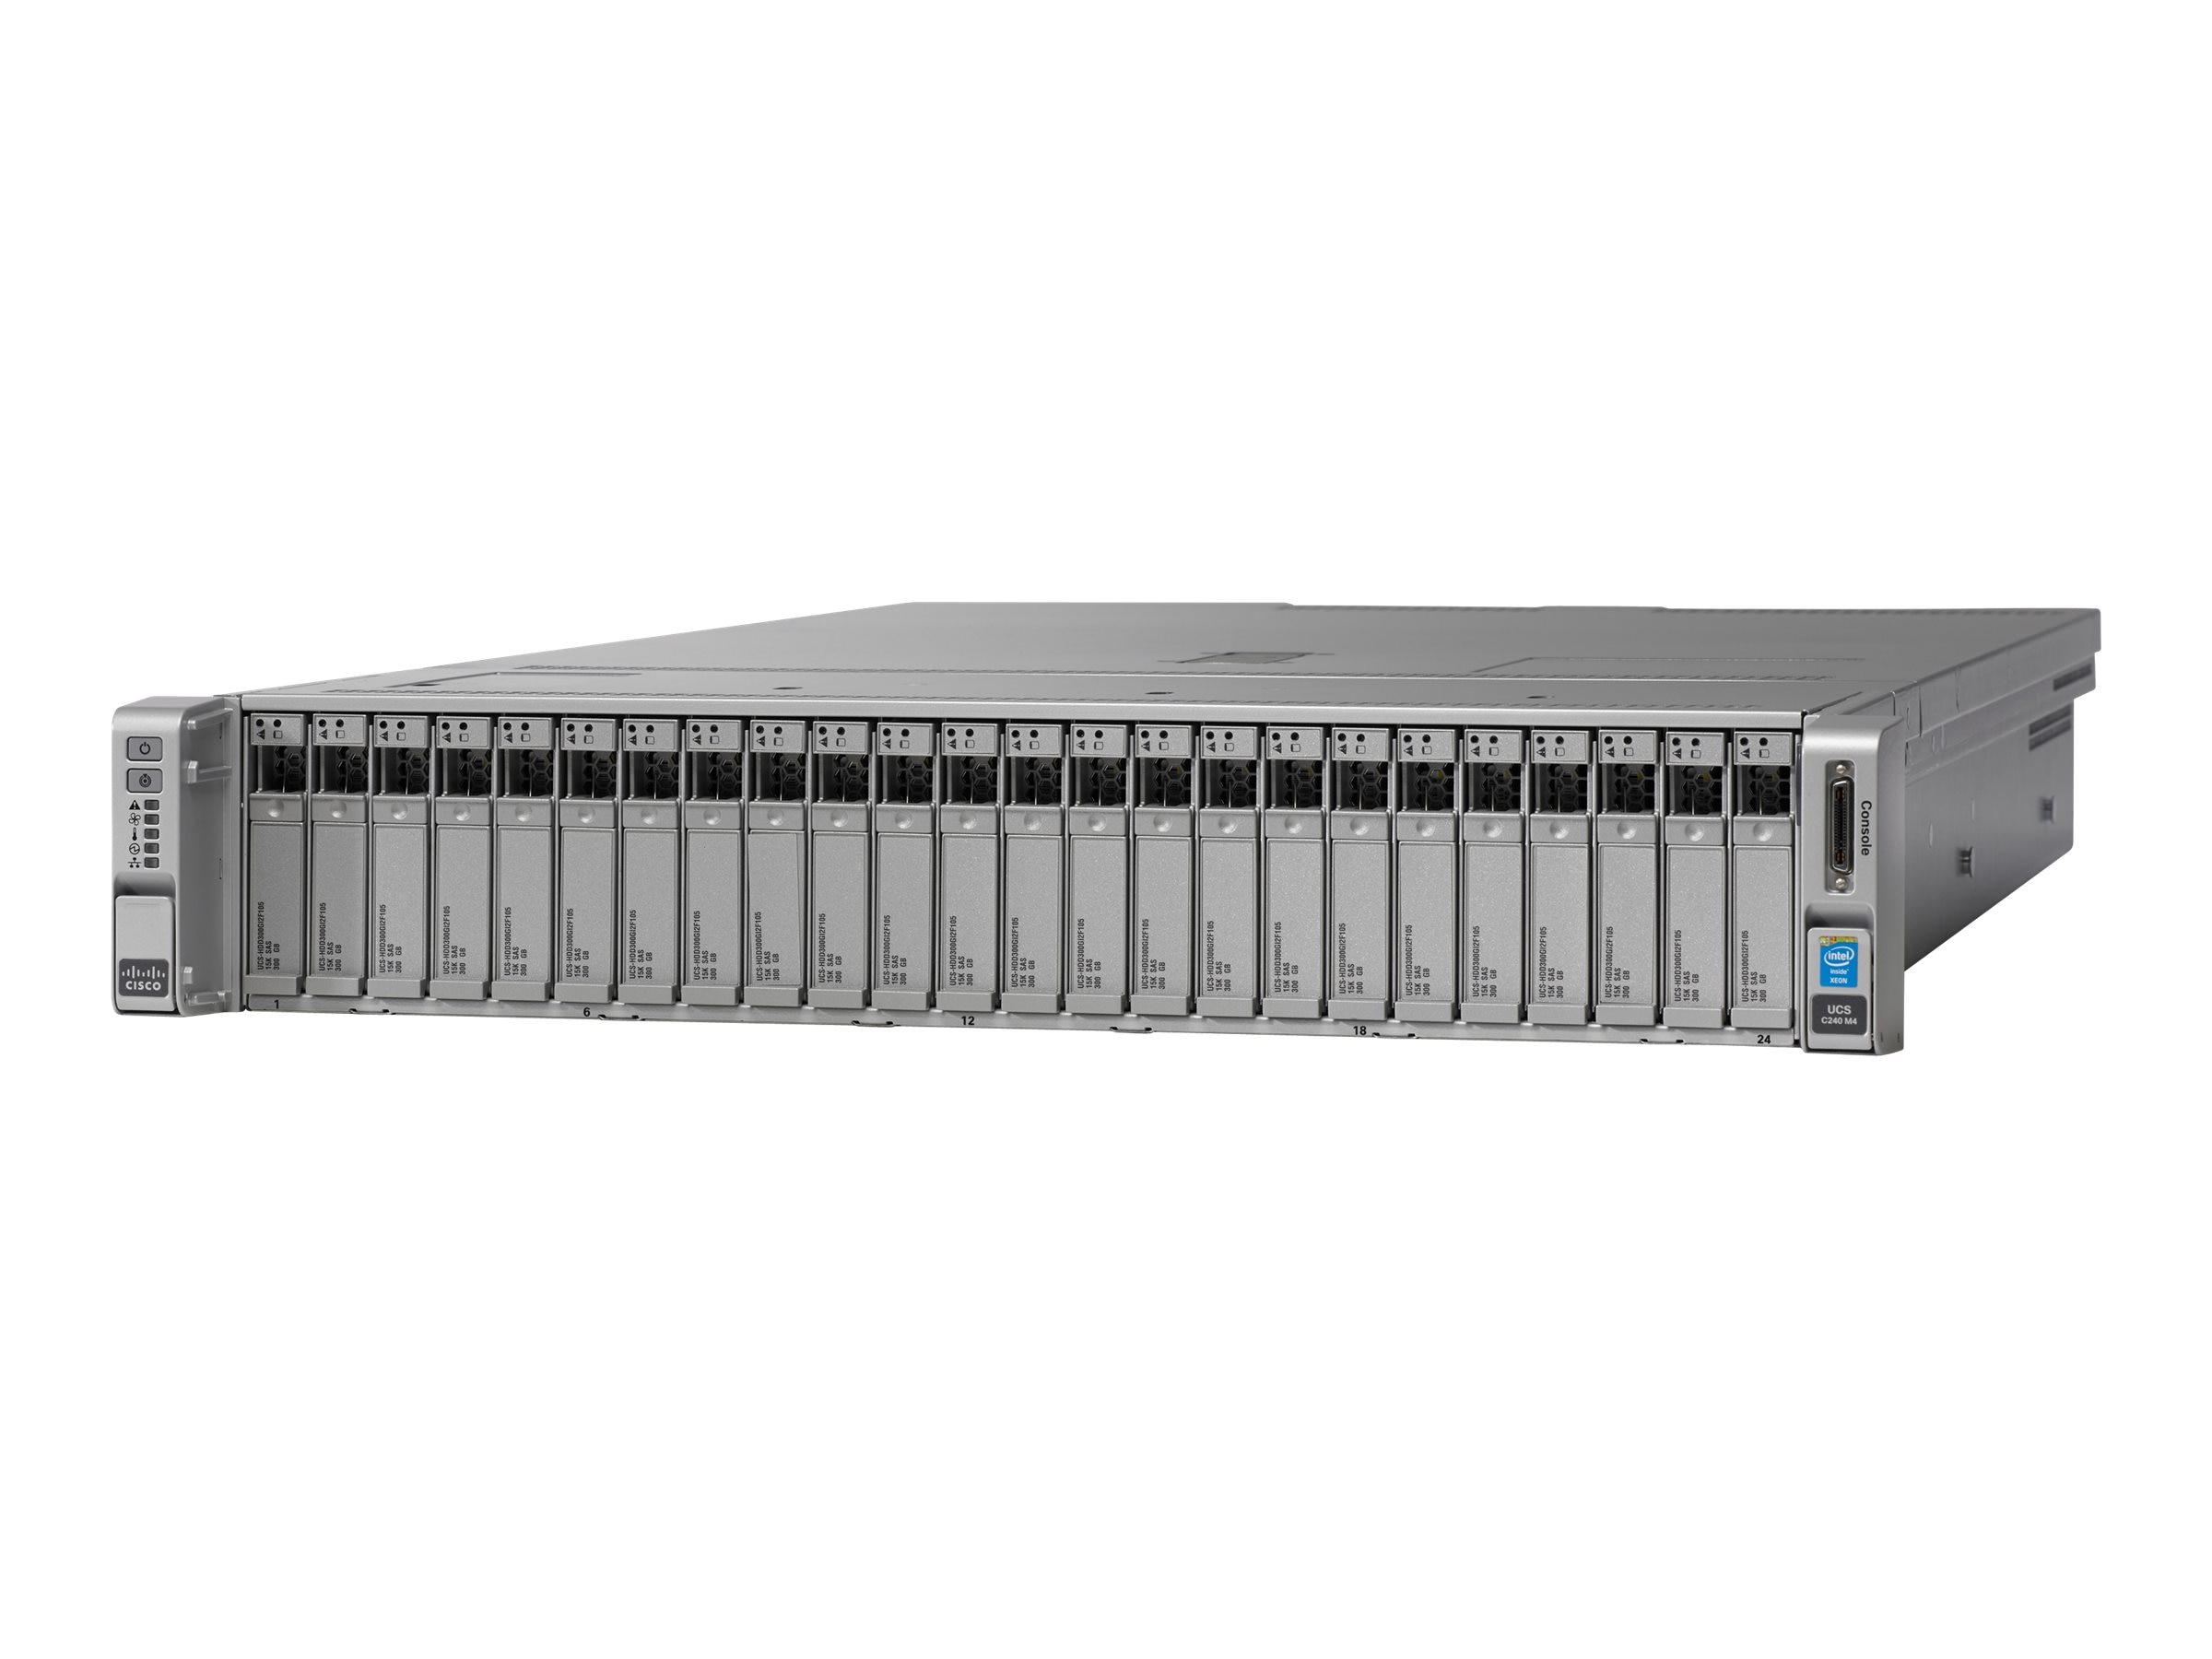 Cisco UCS C240 M4S E5-2609 v4 16GB MRAID 1x1200W 32GB SD Rails